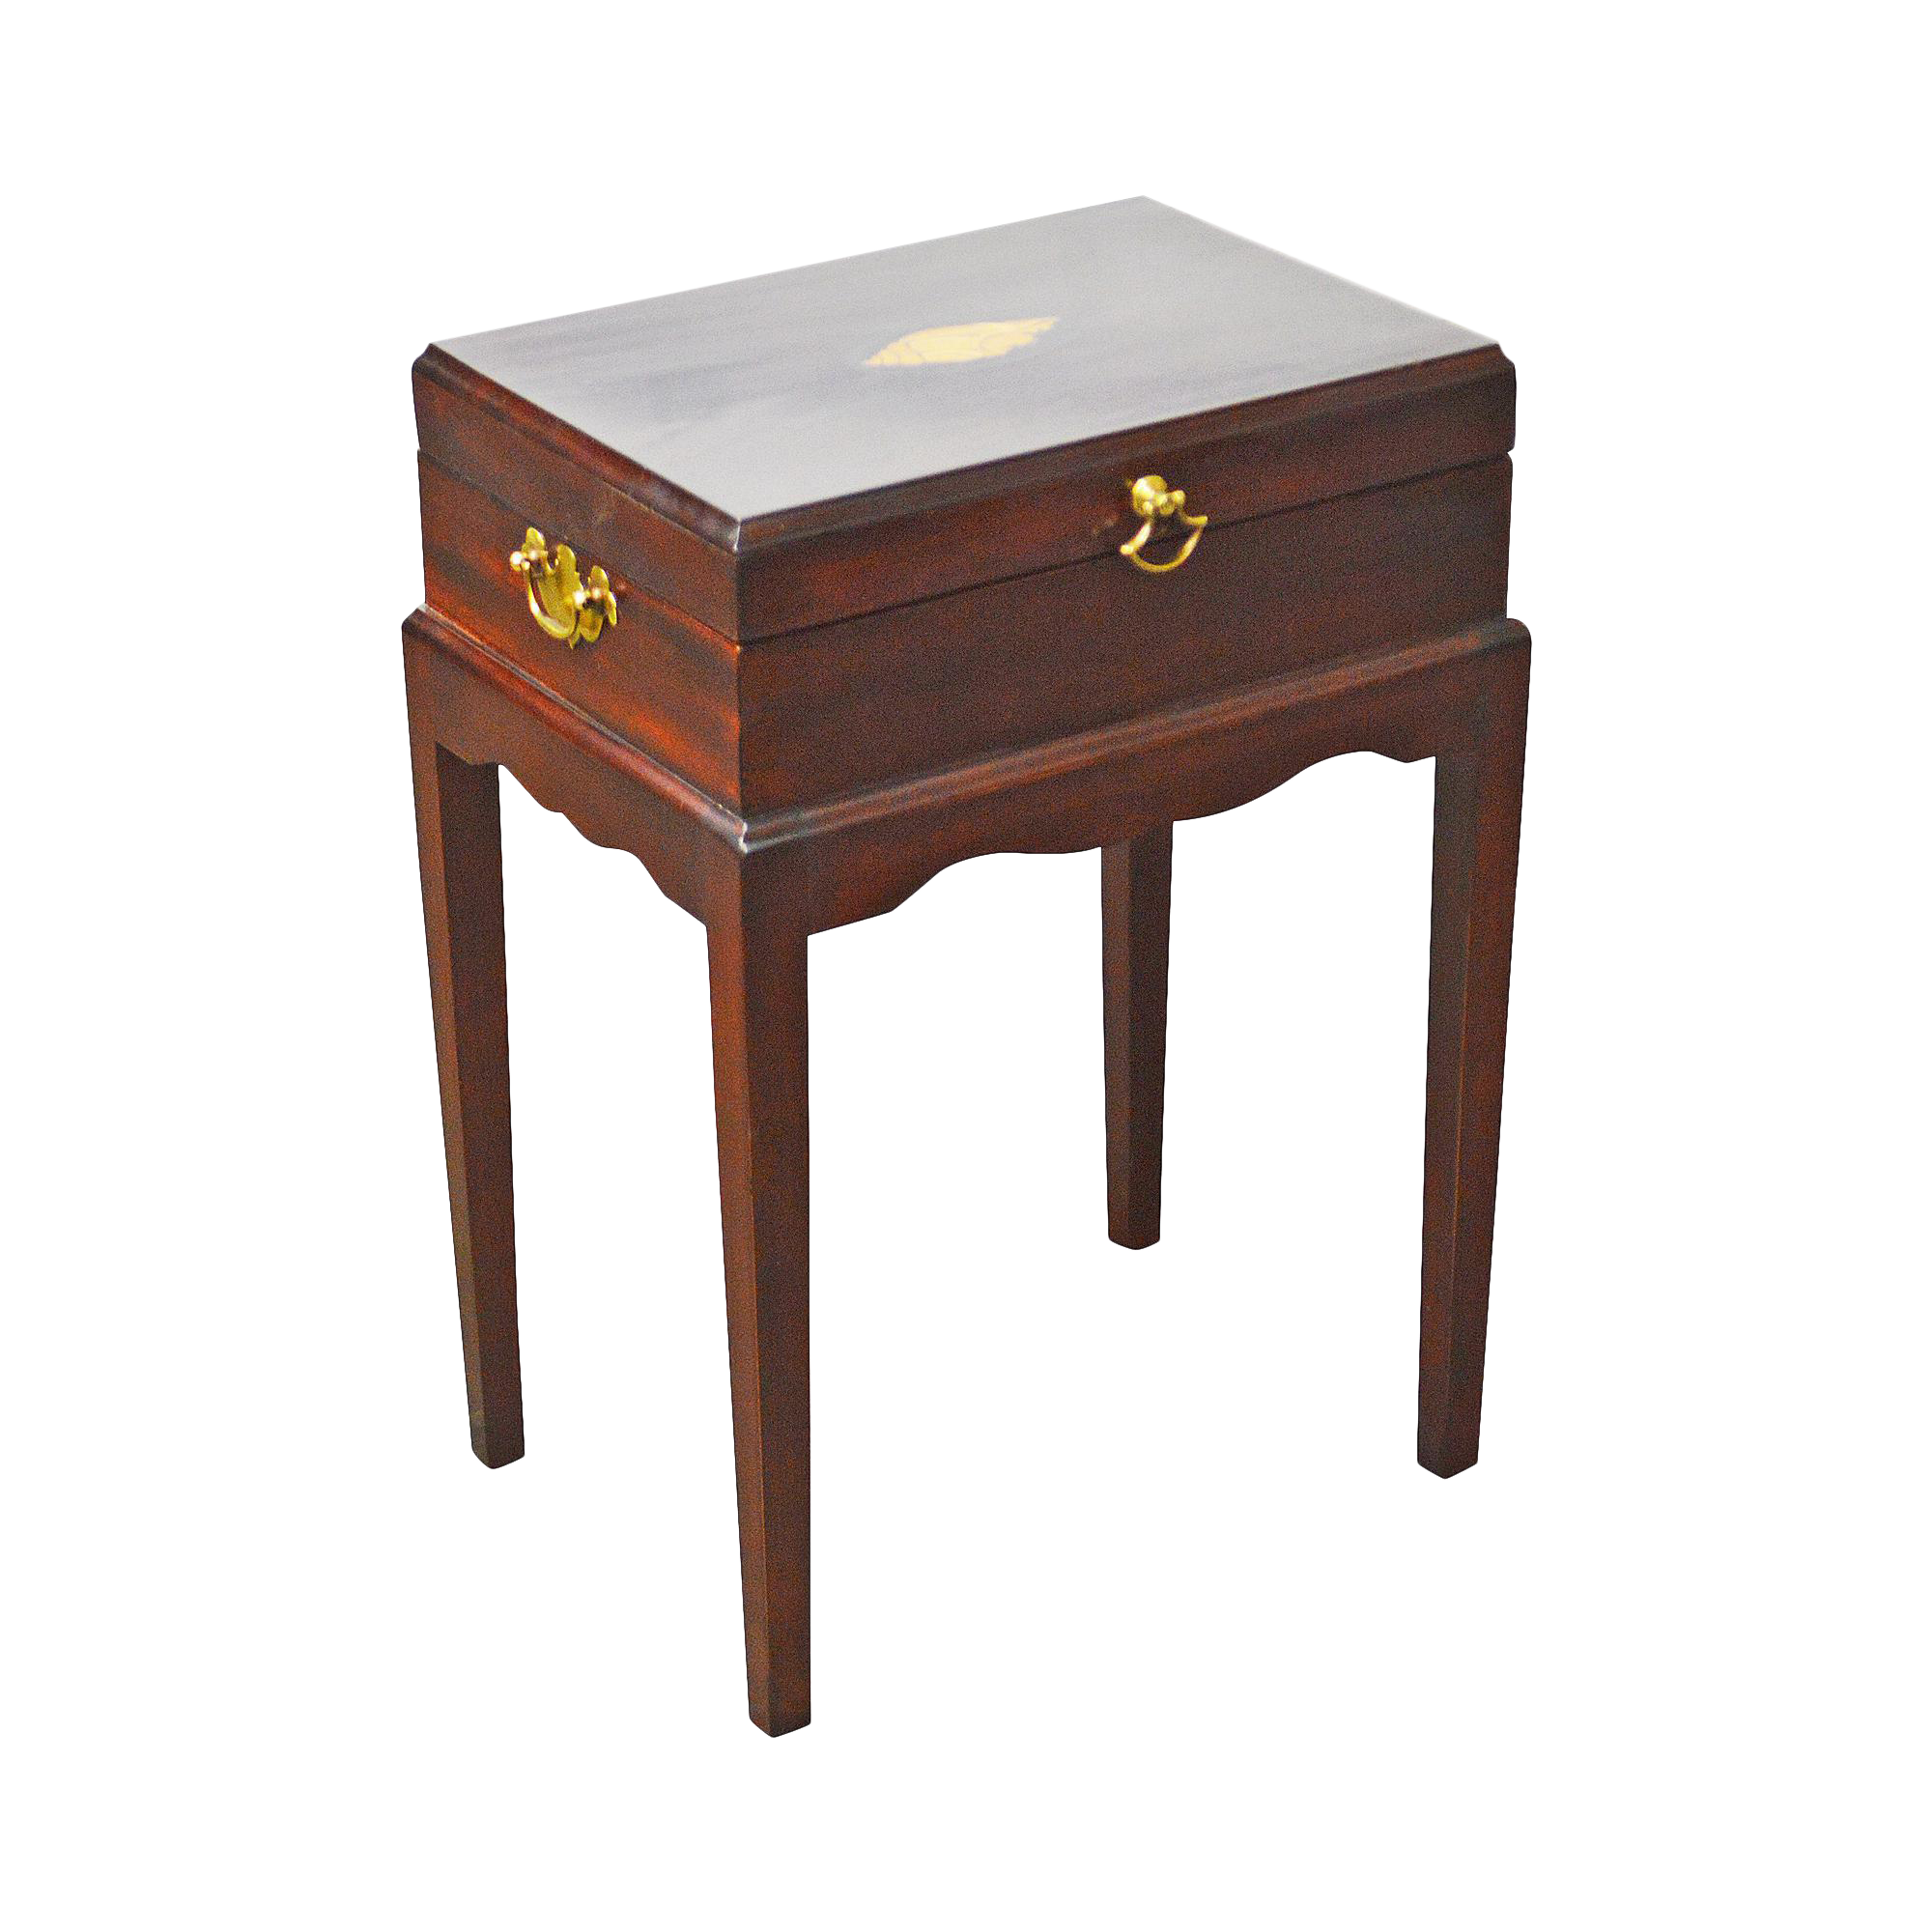 gently used stickley furniture off chairish madison square federal style mahogany inlaid silver chest primitive end tables clearance stanley desk unfinished pine west elm tripod